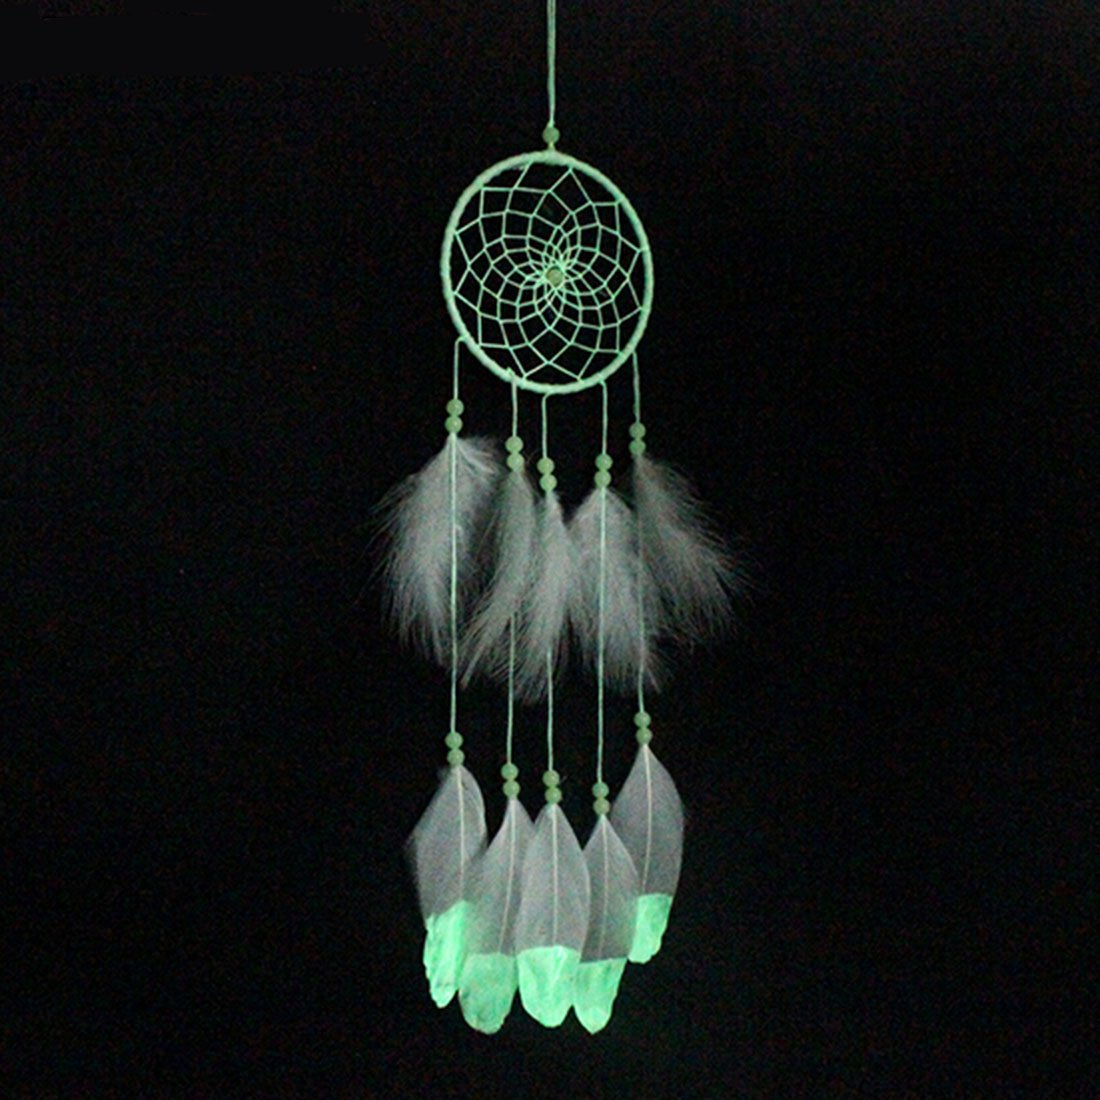 Little Chair Glow In The Dark Handmade Feather Beads Dream Catcher Circular Net Home Room Wall Hanging Decor Party Wedding Ornament